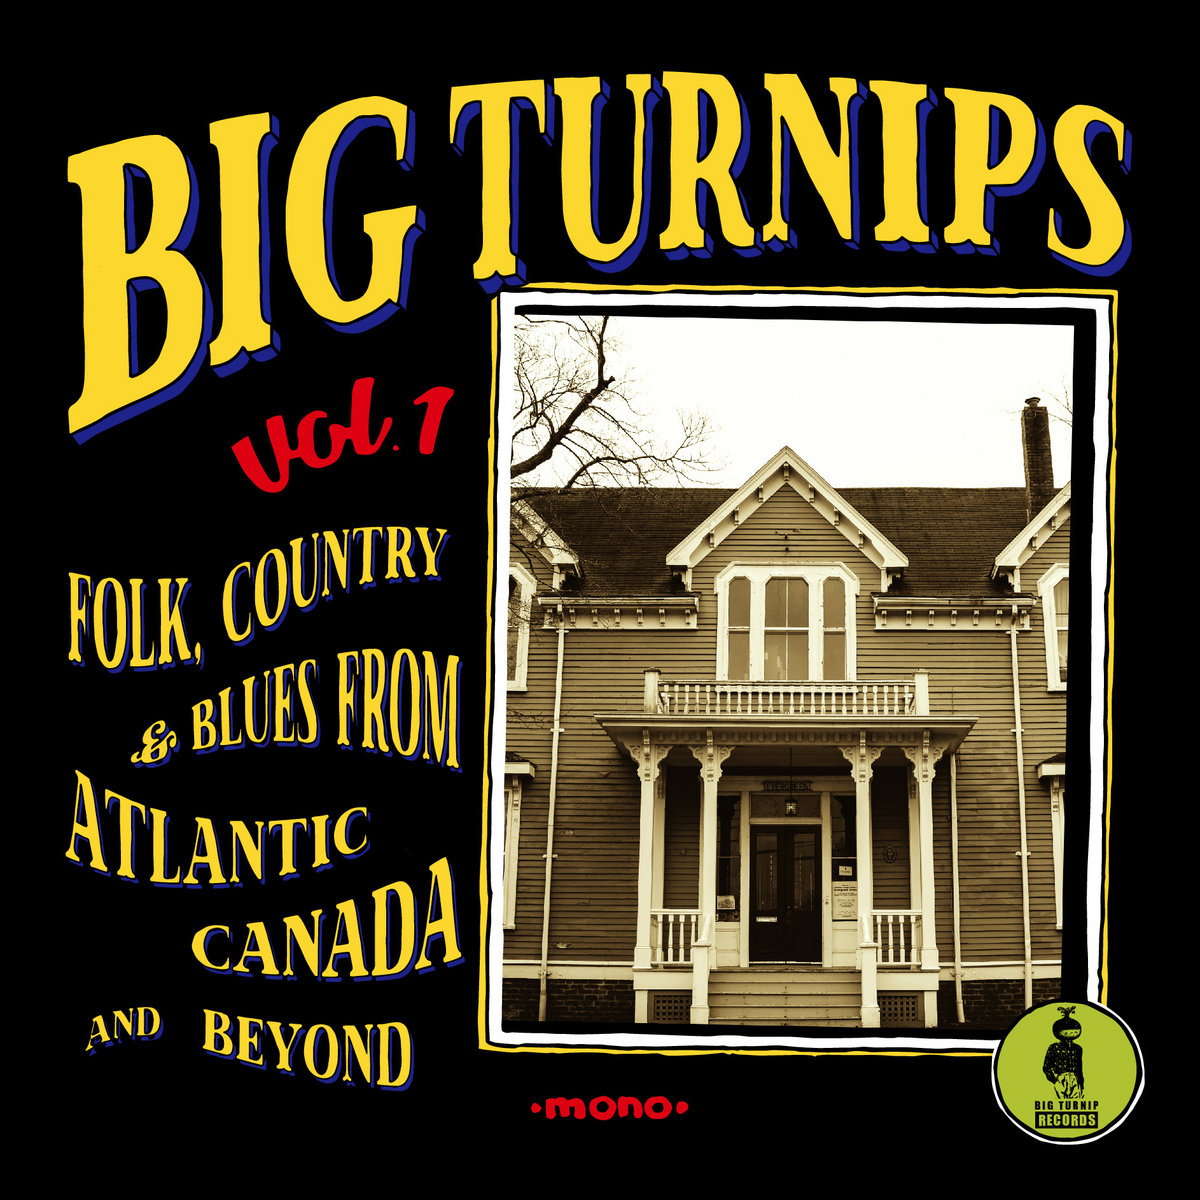 Includes Unlimited Streaming Of Big Turnips Vol 1 Folk Country Blues From Atlantic Canada And Beyond Via The Free Bandcamp App Plus High Quality